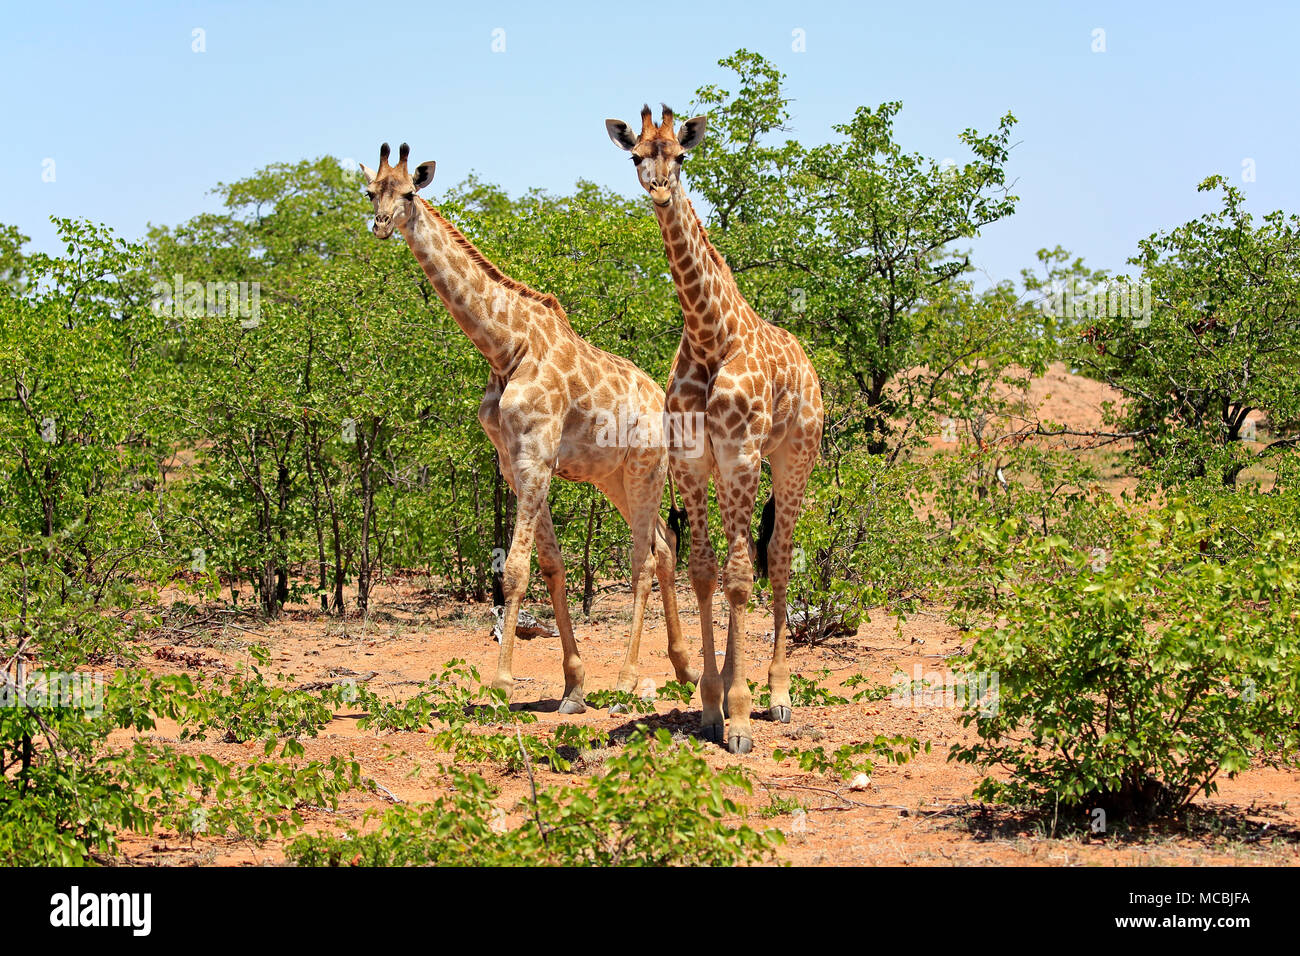 Two Southern giraffes (Giraffa camelopardalis giraffa), adult, in bushland, Kruger National Park, South Africa - Stock Image